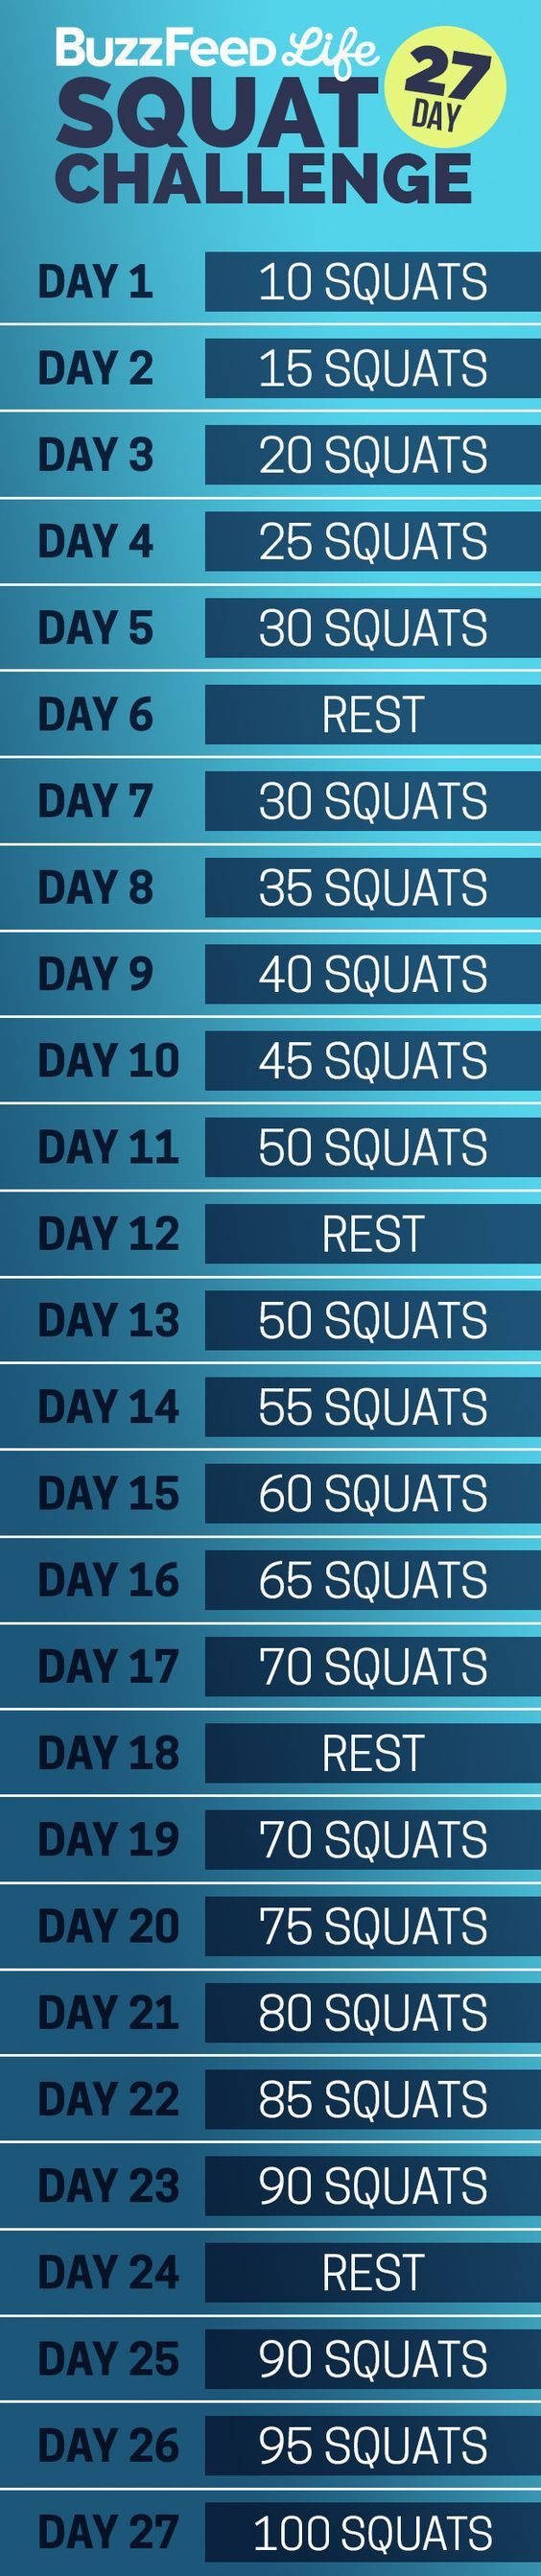 Here's your daily squat schedule: | Take BuzzFeed's 27-Day Squat Challenge, Have The Best Summer Of Your Life!